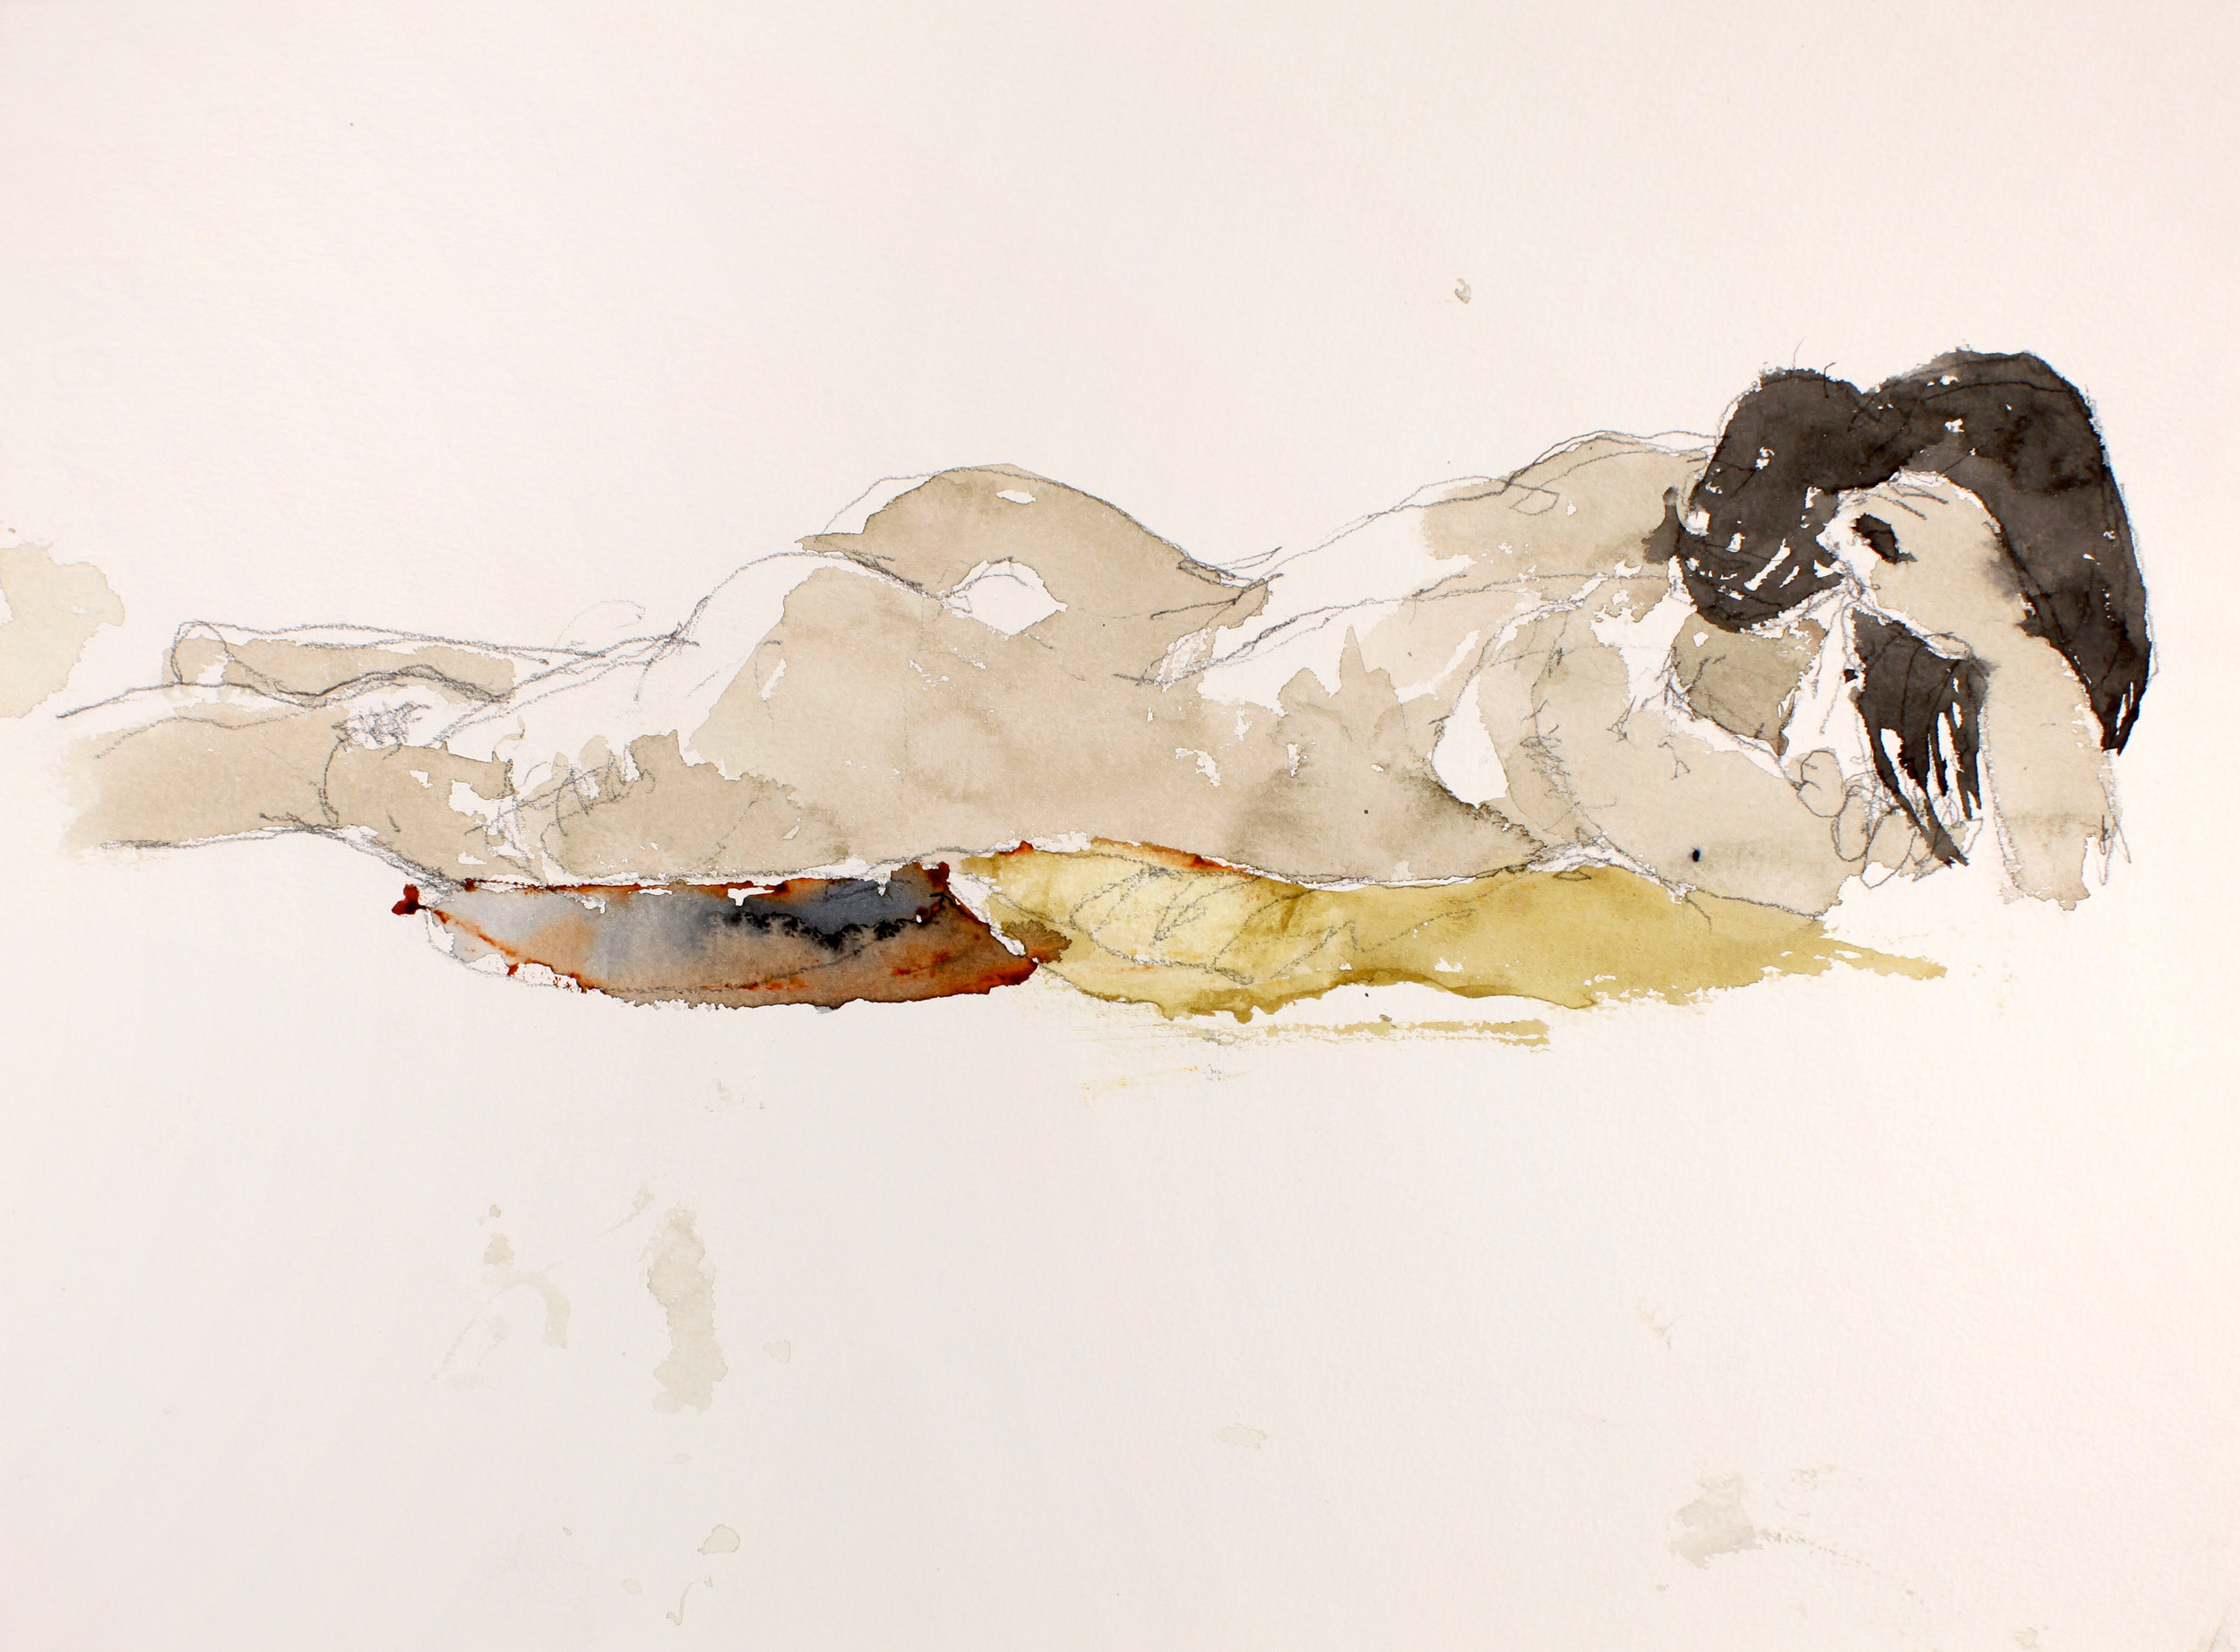 2006_Reclining_Nude_on_Pillows_watercolour_and_pencil_on_paper_11x15in_WPF218.jpg